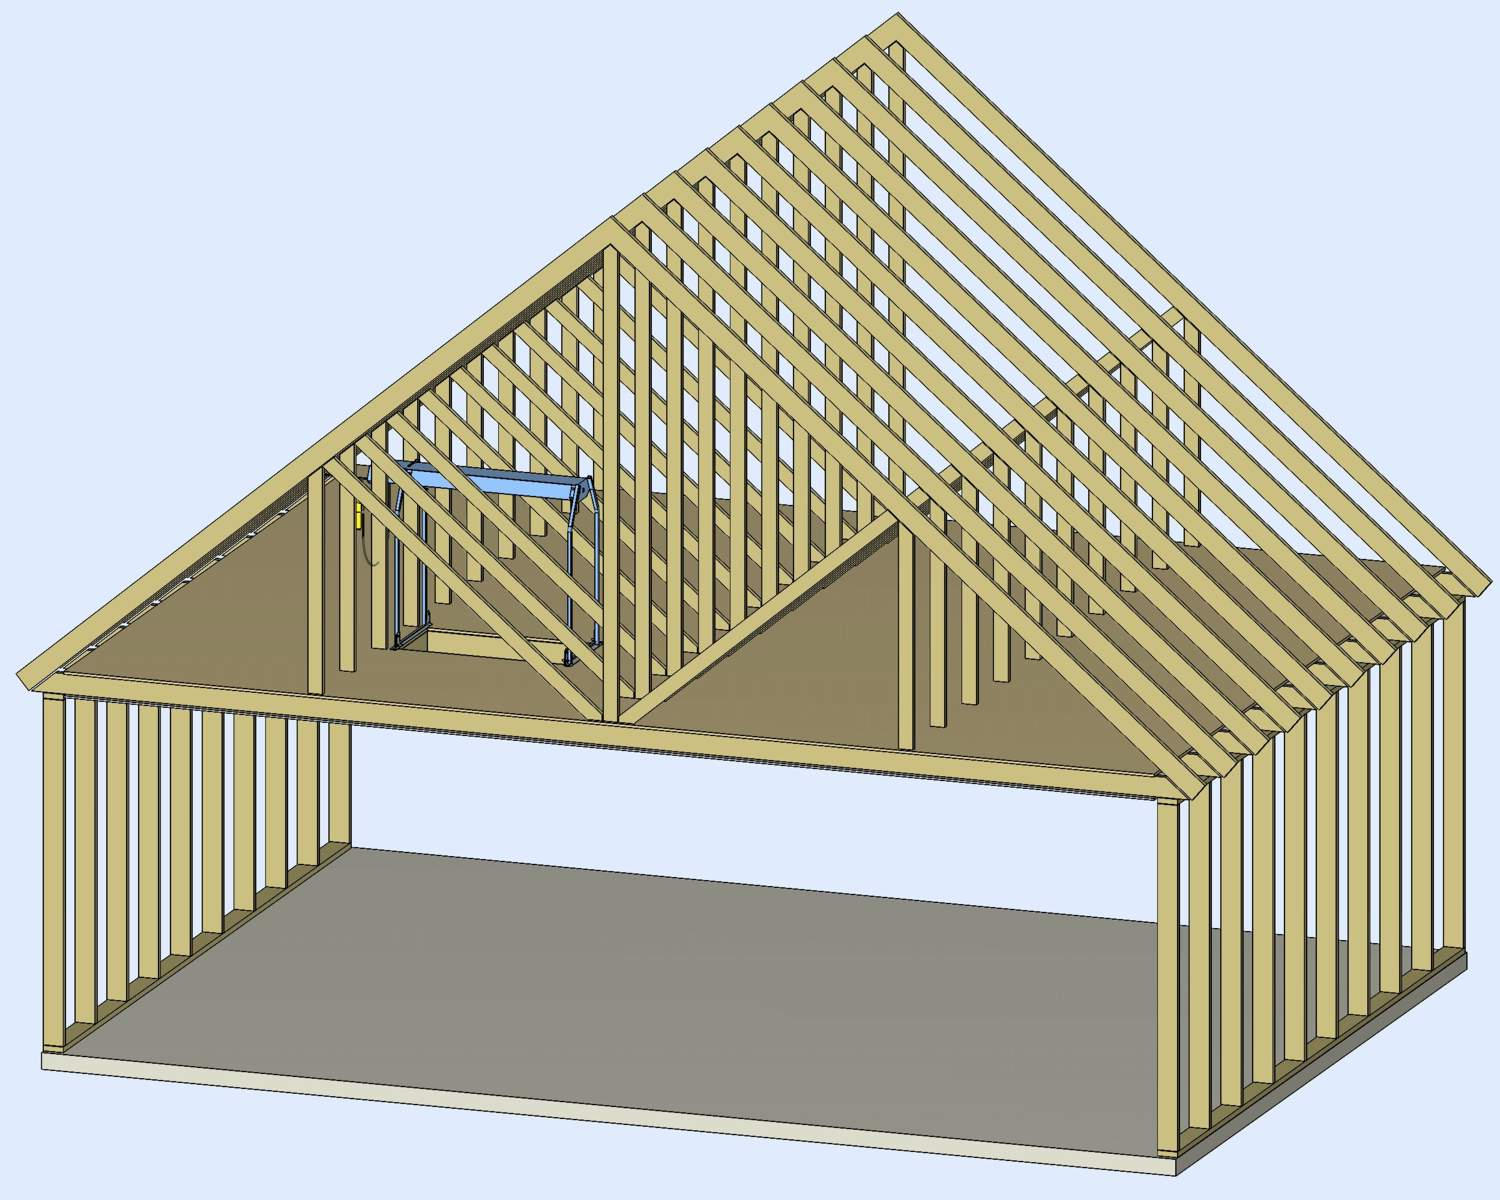 Roof truss design for attic storage attic ideas for Premade roof trusses